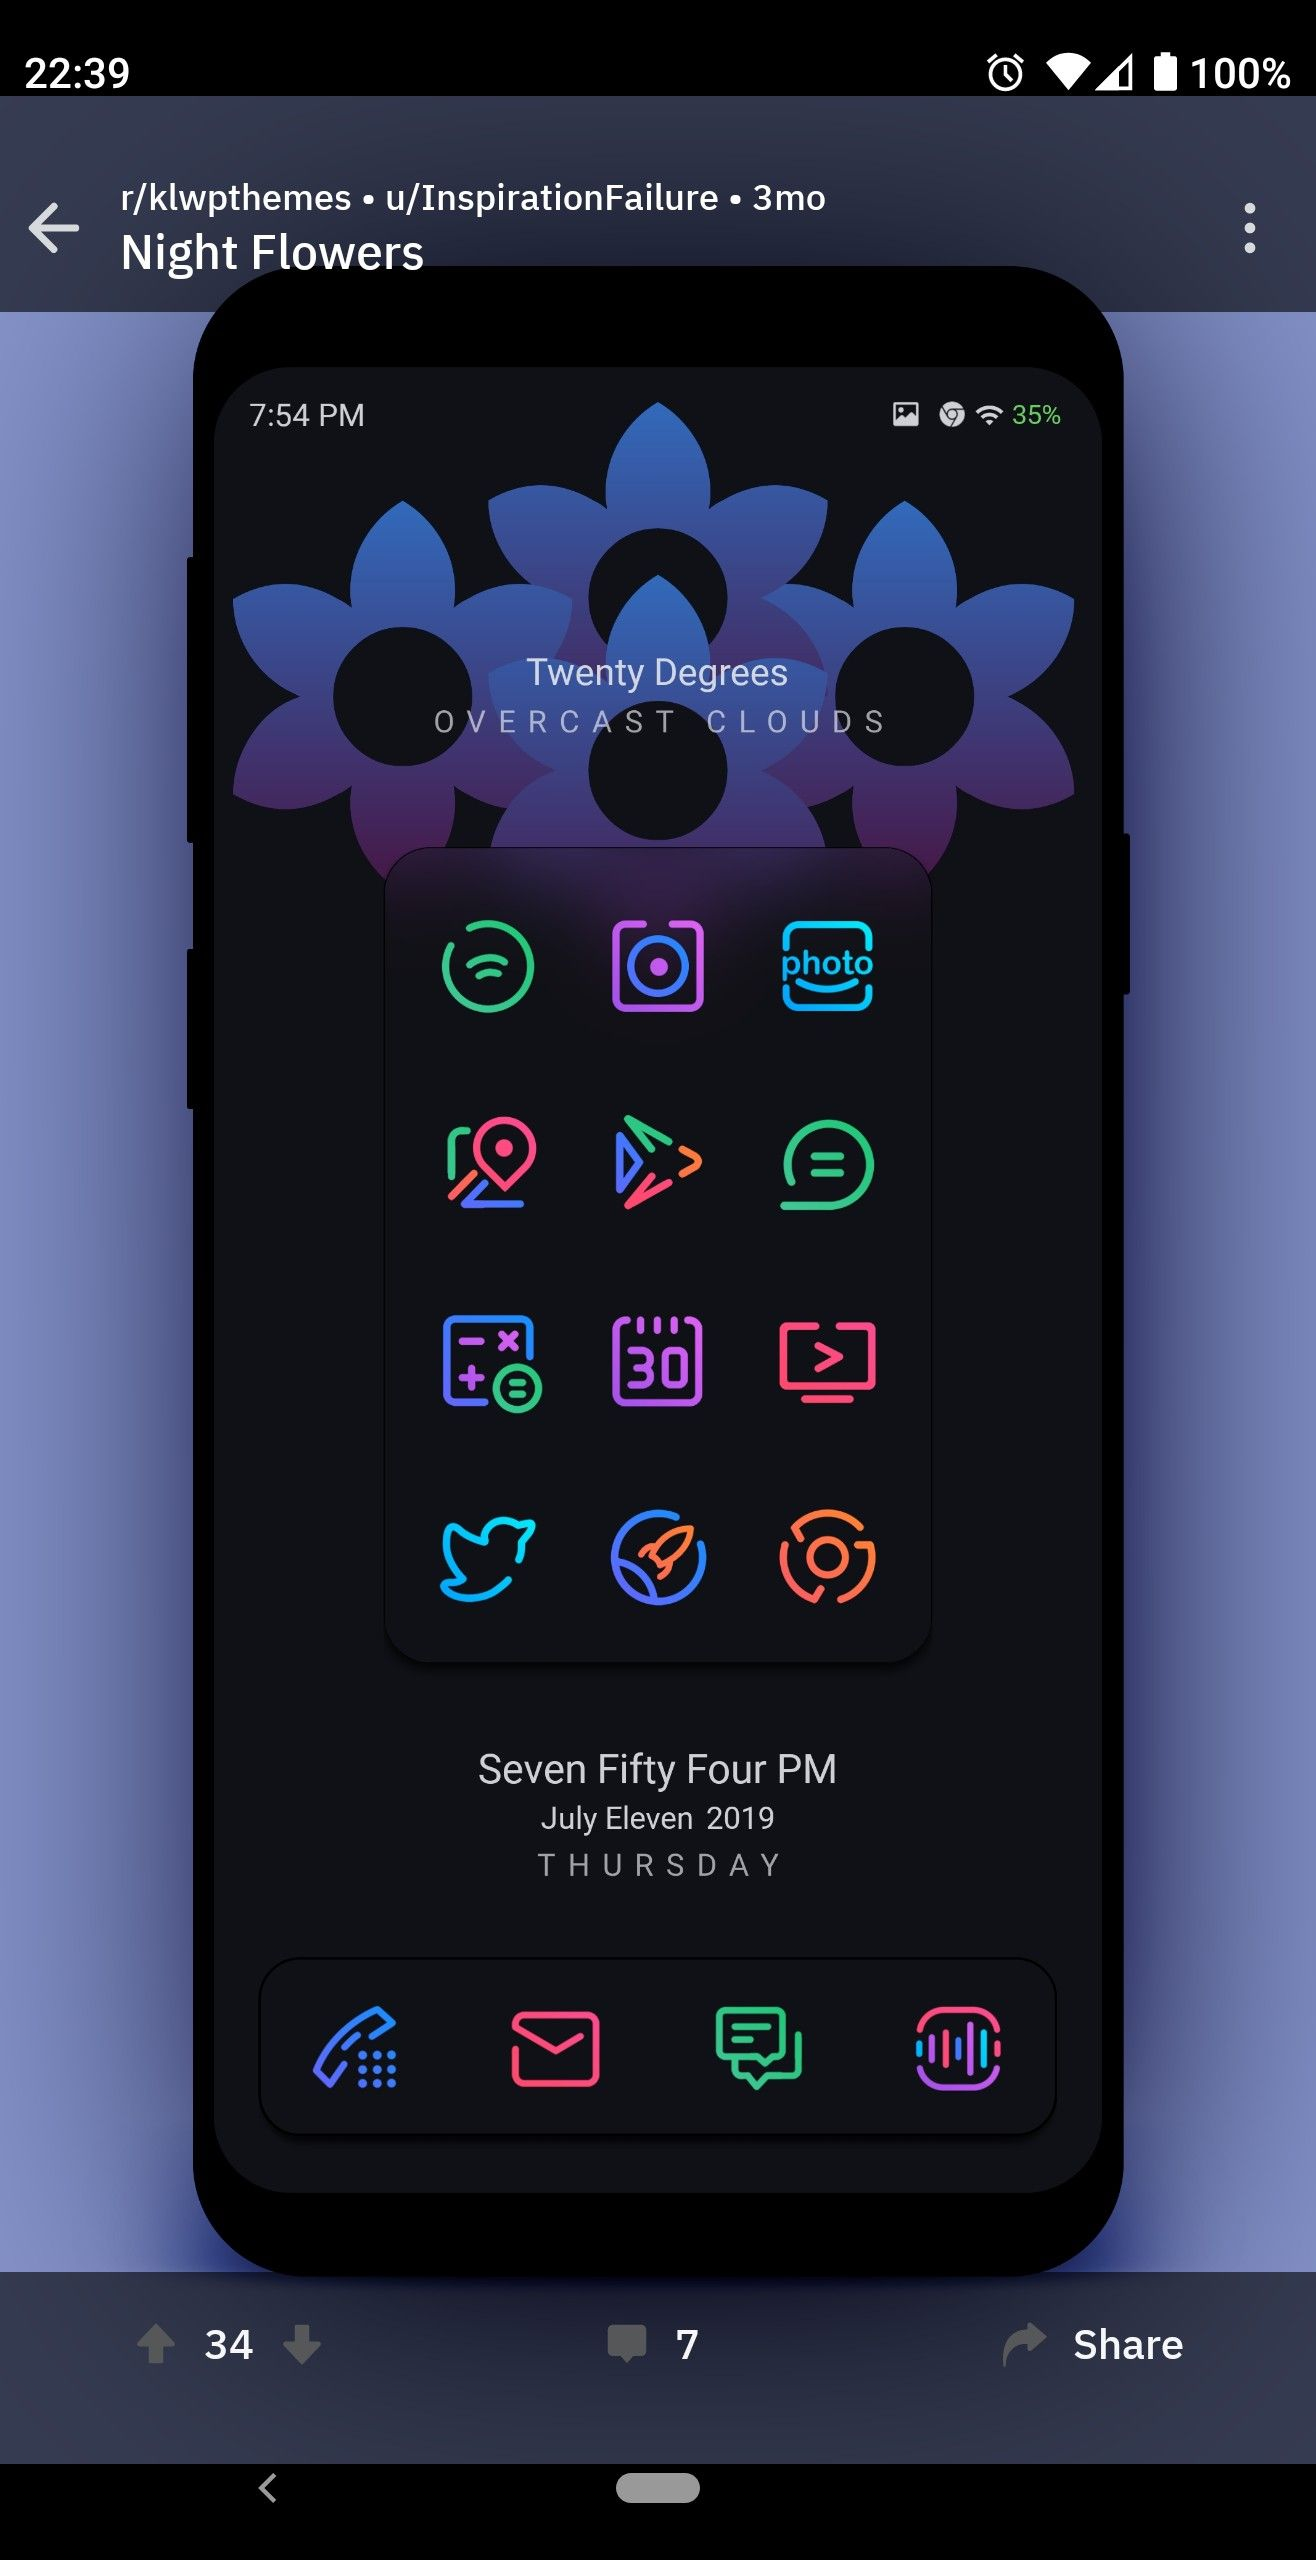 Pin by SanJi on Homescreen Setup in 2020 (With images